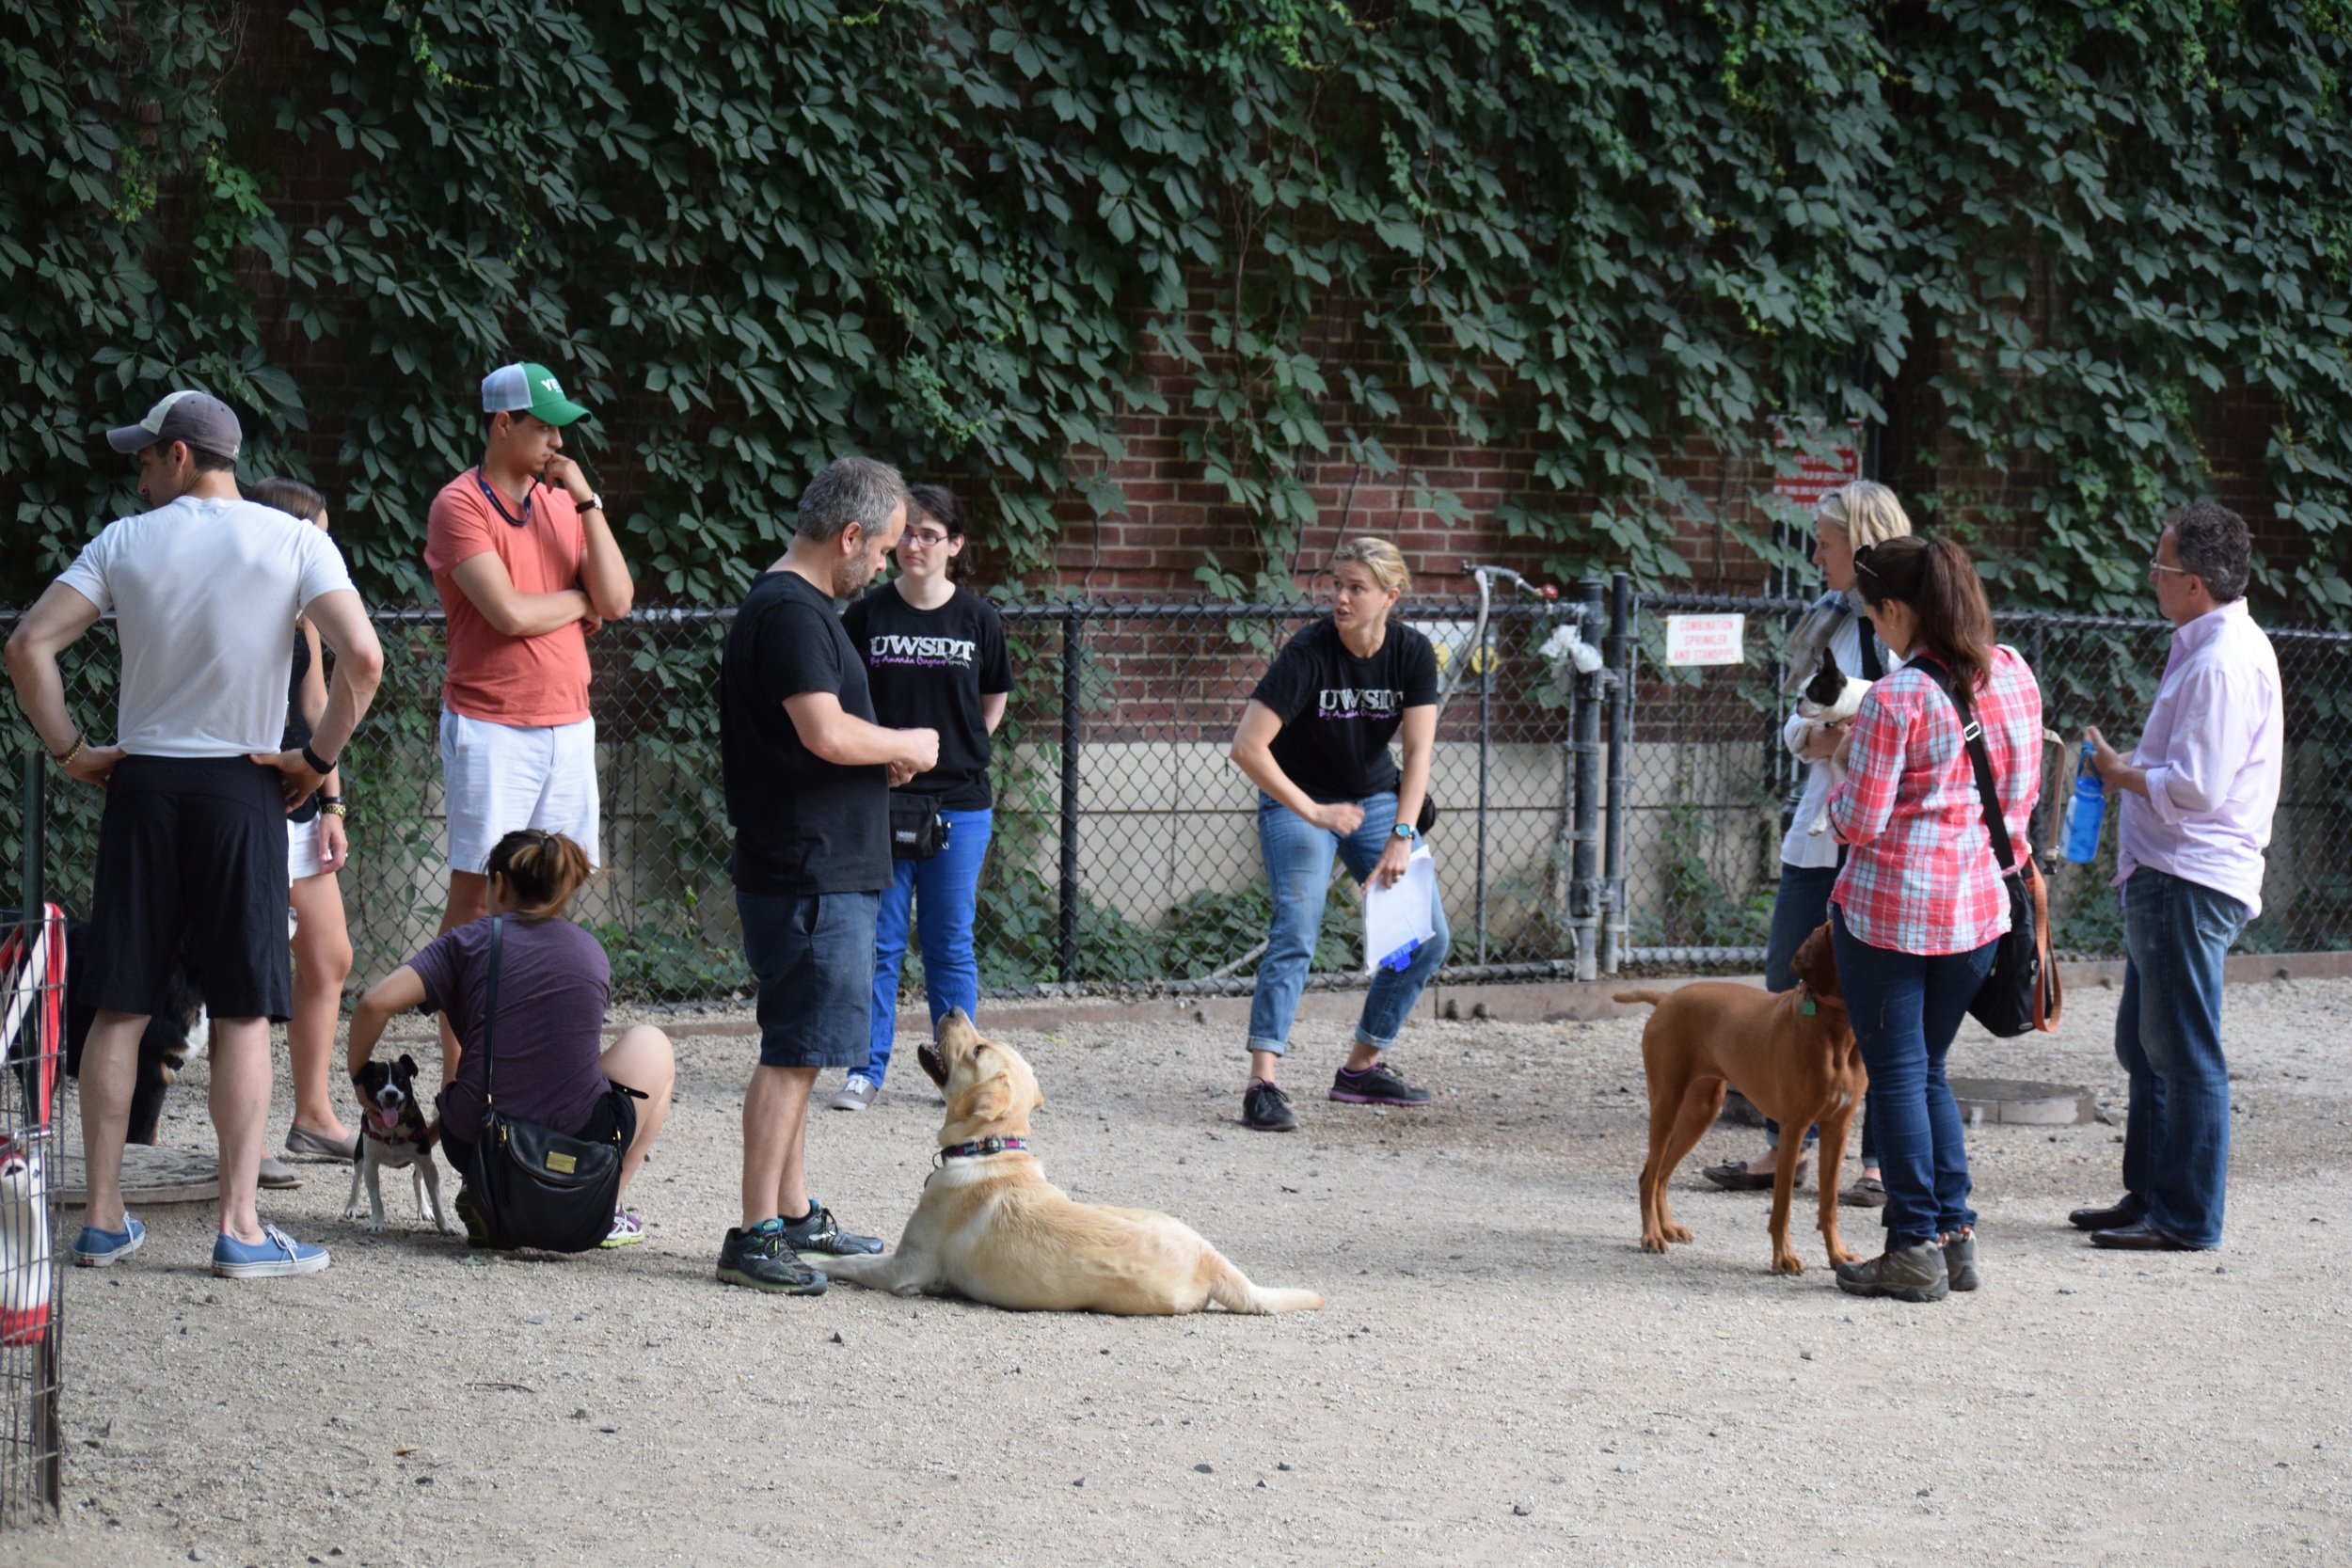 Group Classes - Group classes are the most economical way to learn new things with your dog. They also provide a fun opportunity for you and your dog to engage with other members of the community, socialize, and perfect good manners in distracting public environments. Learn more.